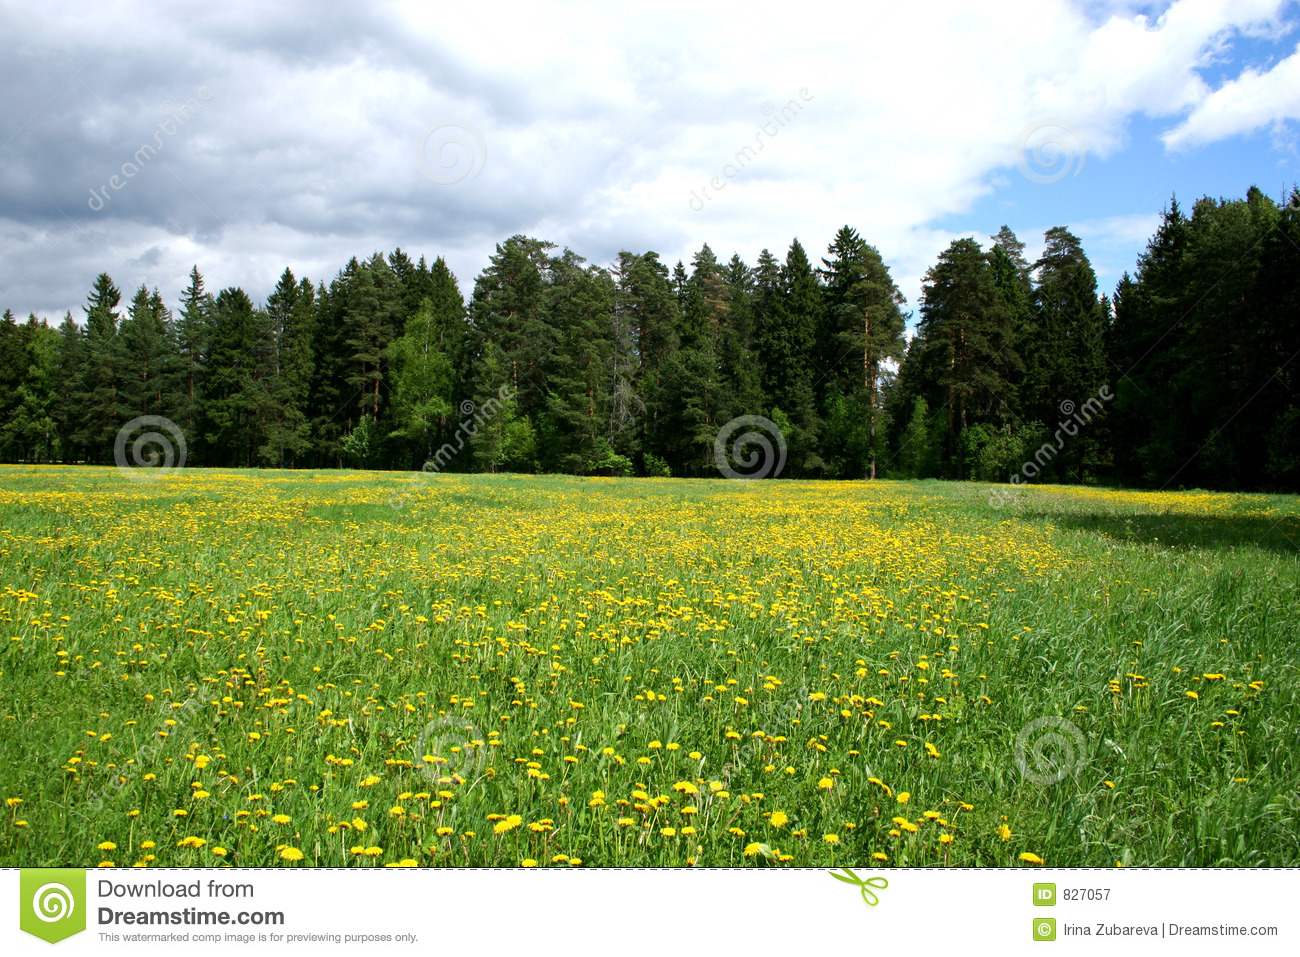 Meadow and dandelions.